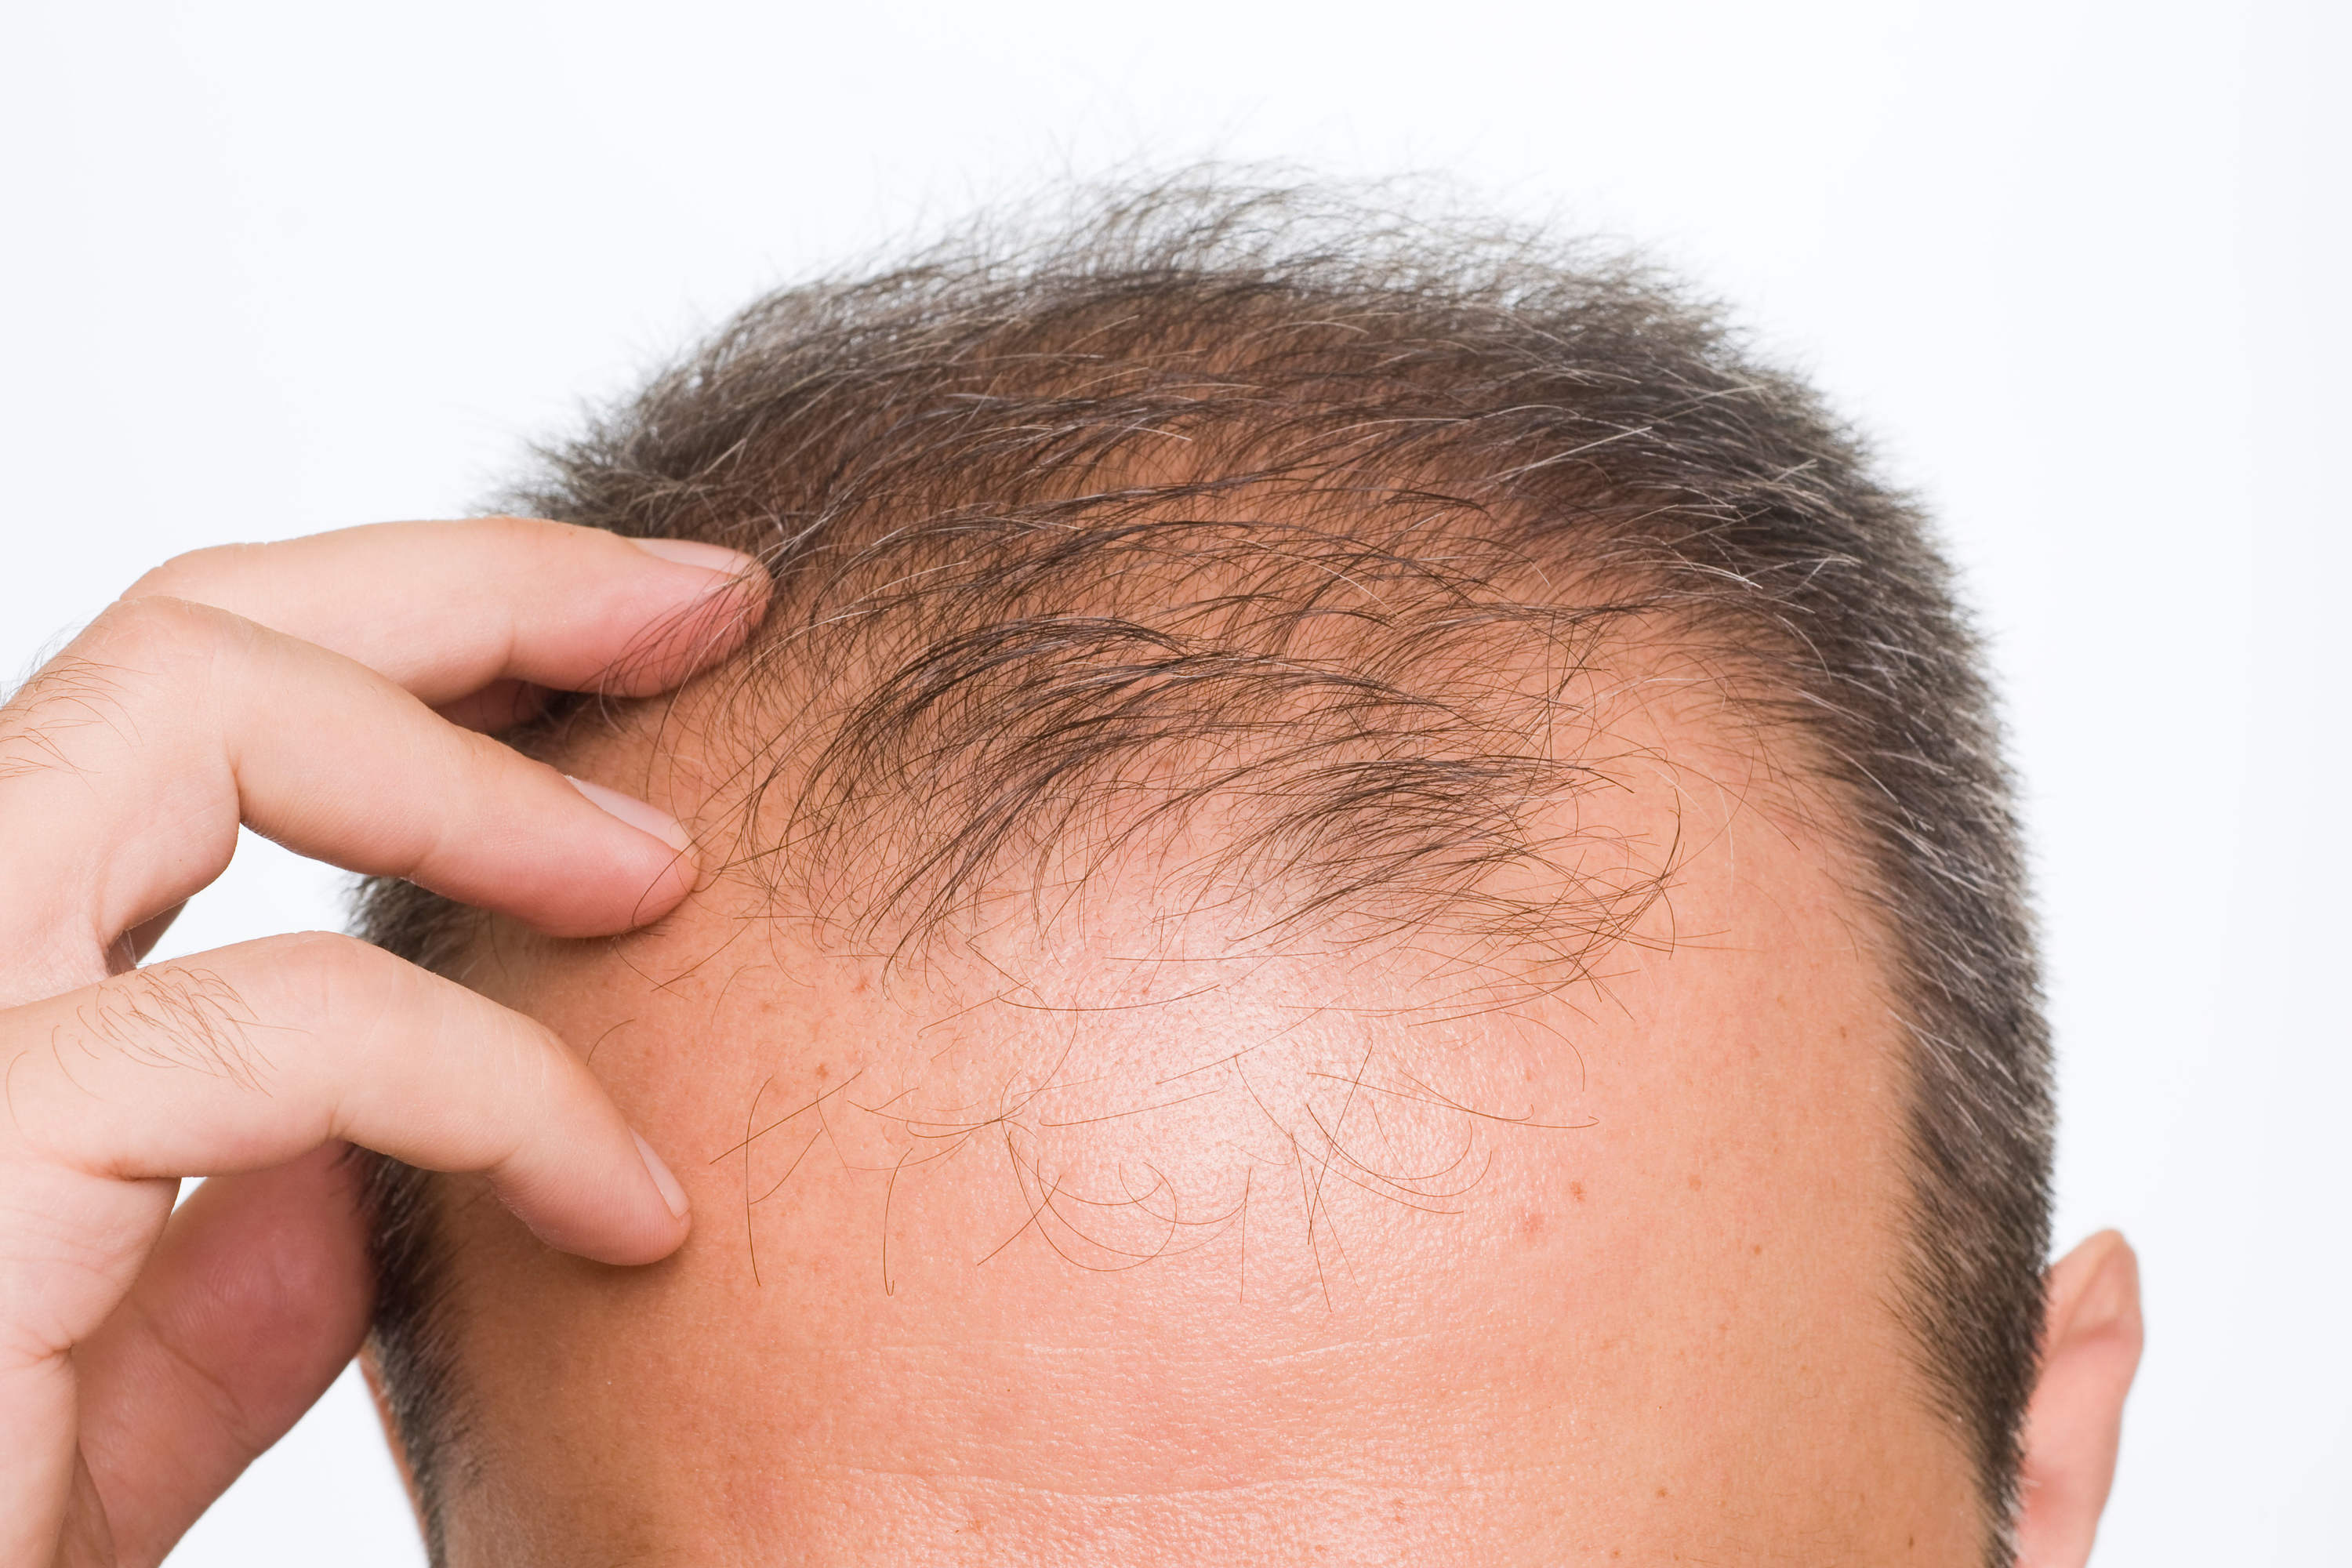 Hair loss becomes latest plague from 2020 as the stress literally makes people's hair fall out